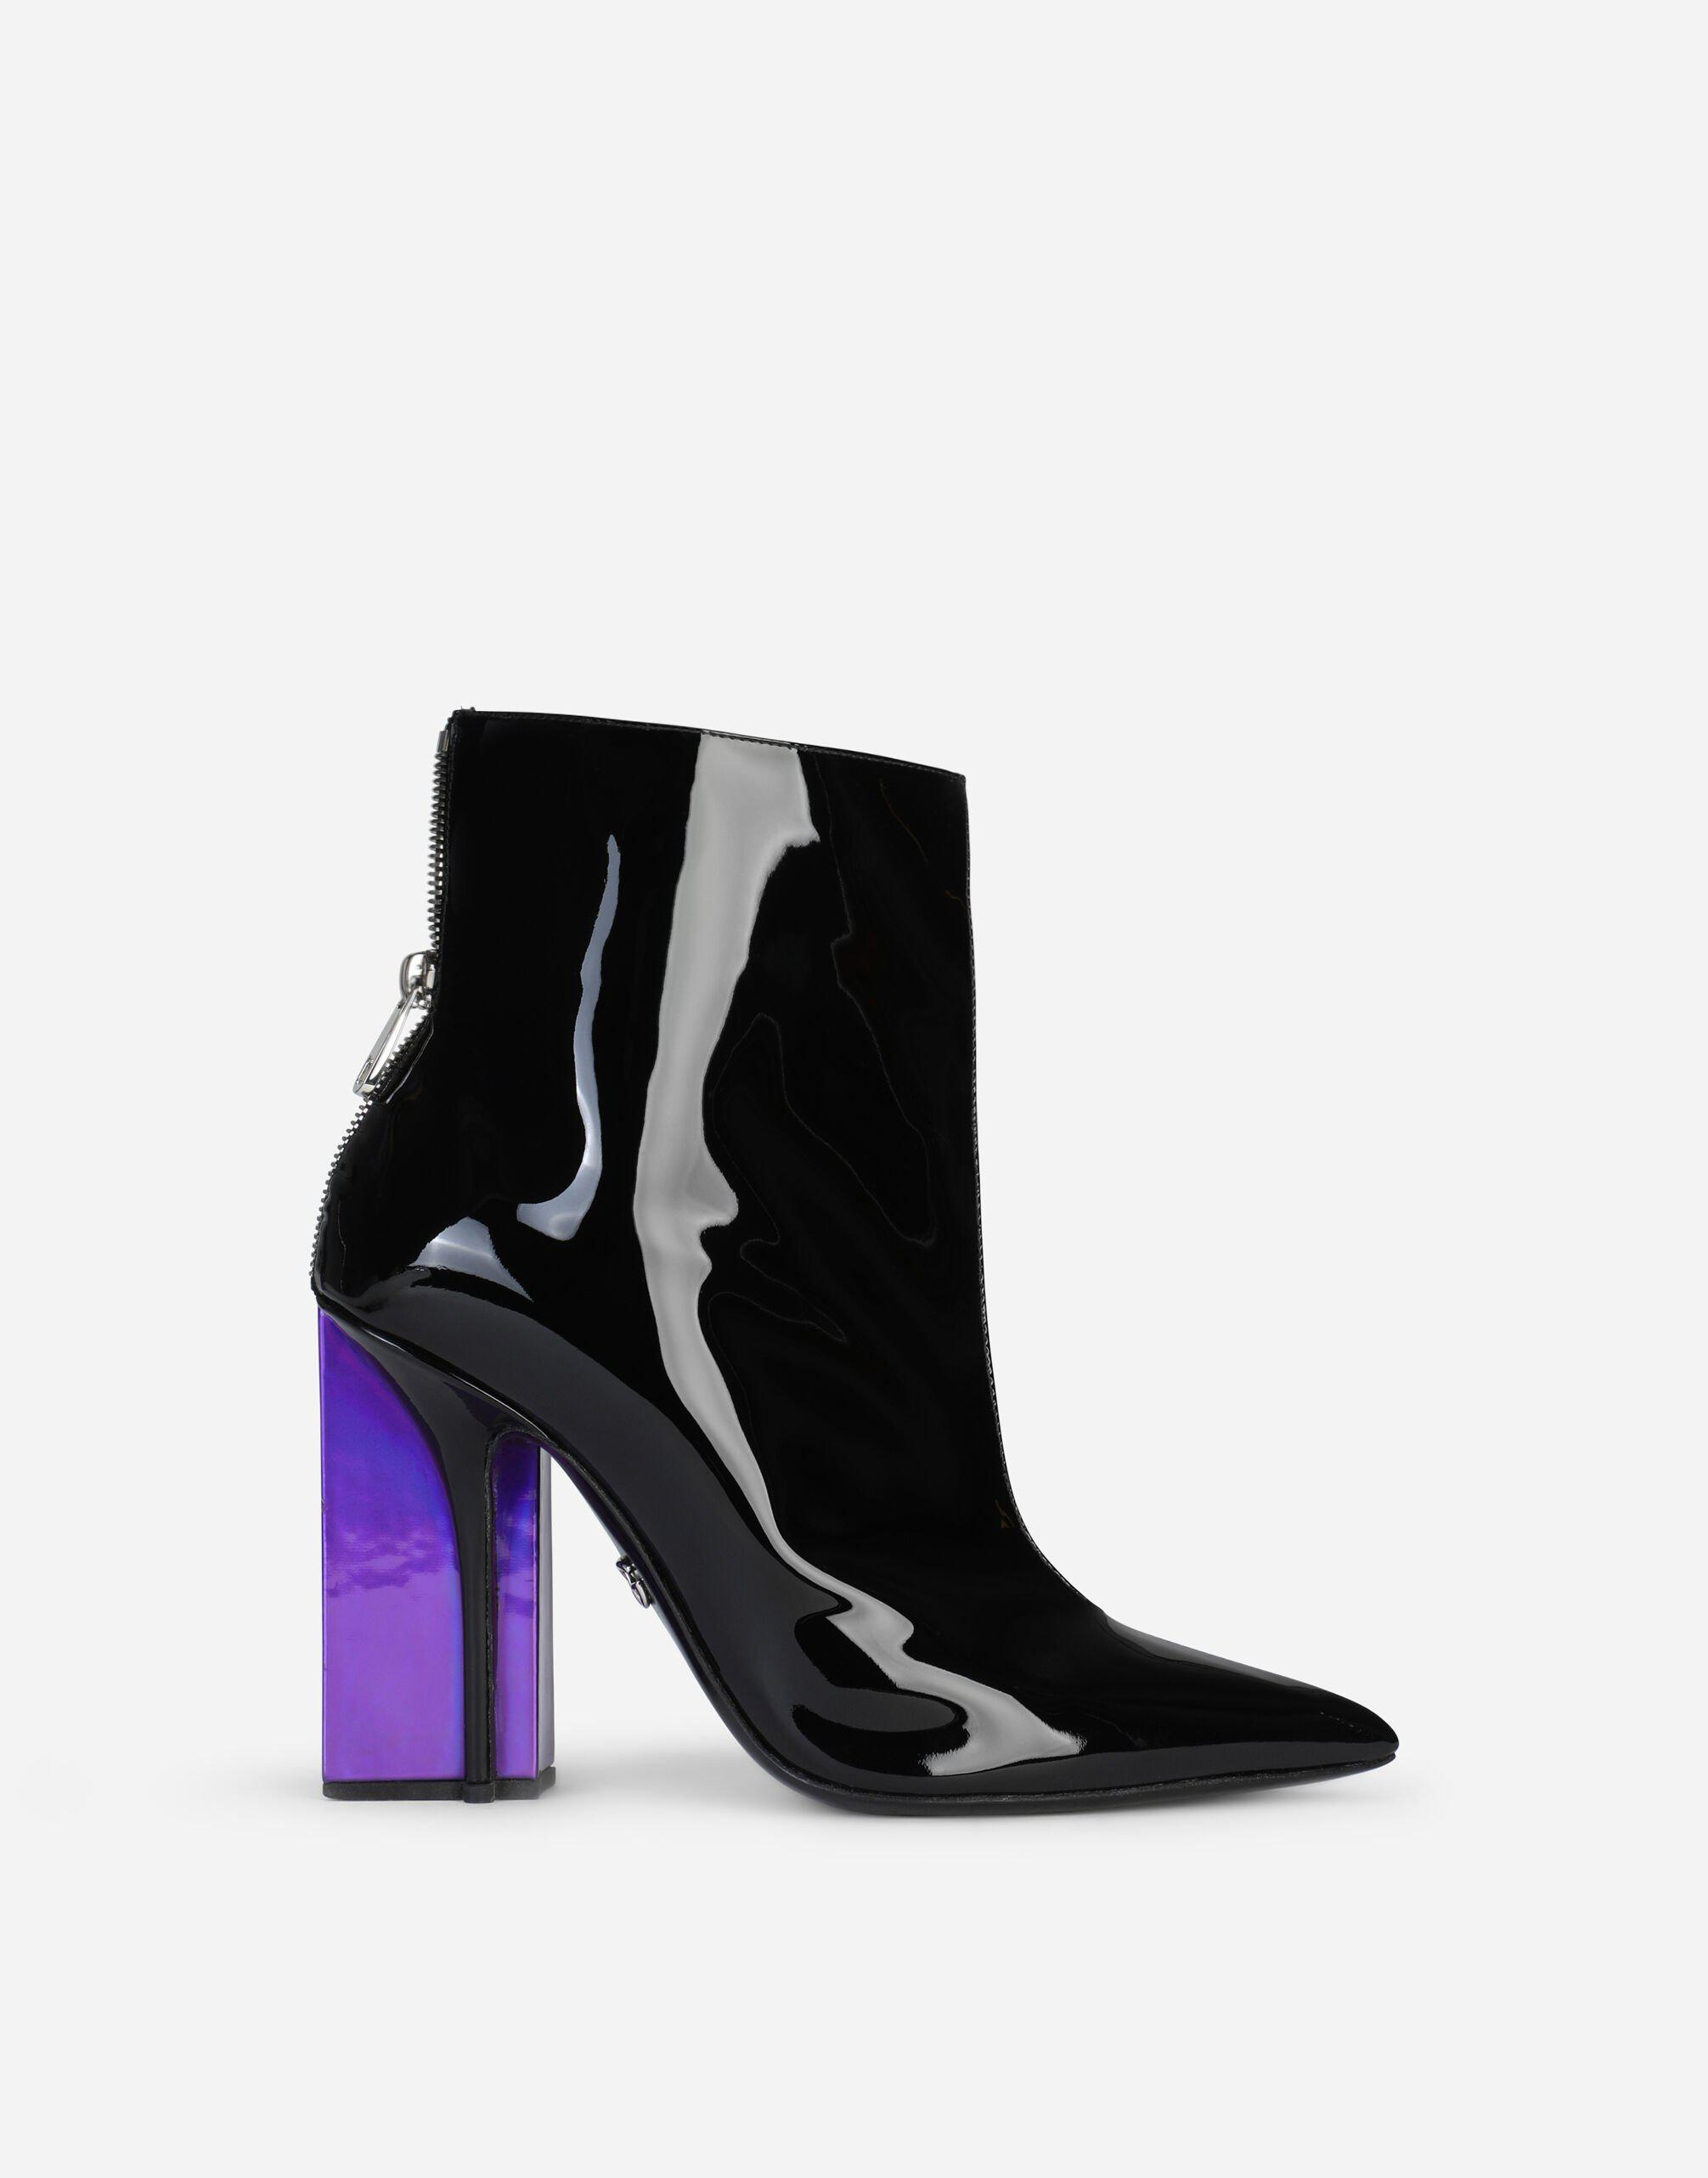 Strobo calfskin and patent leather ankle boots